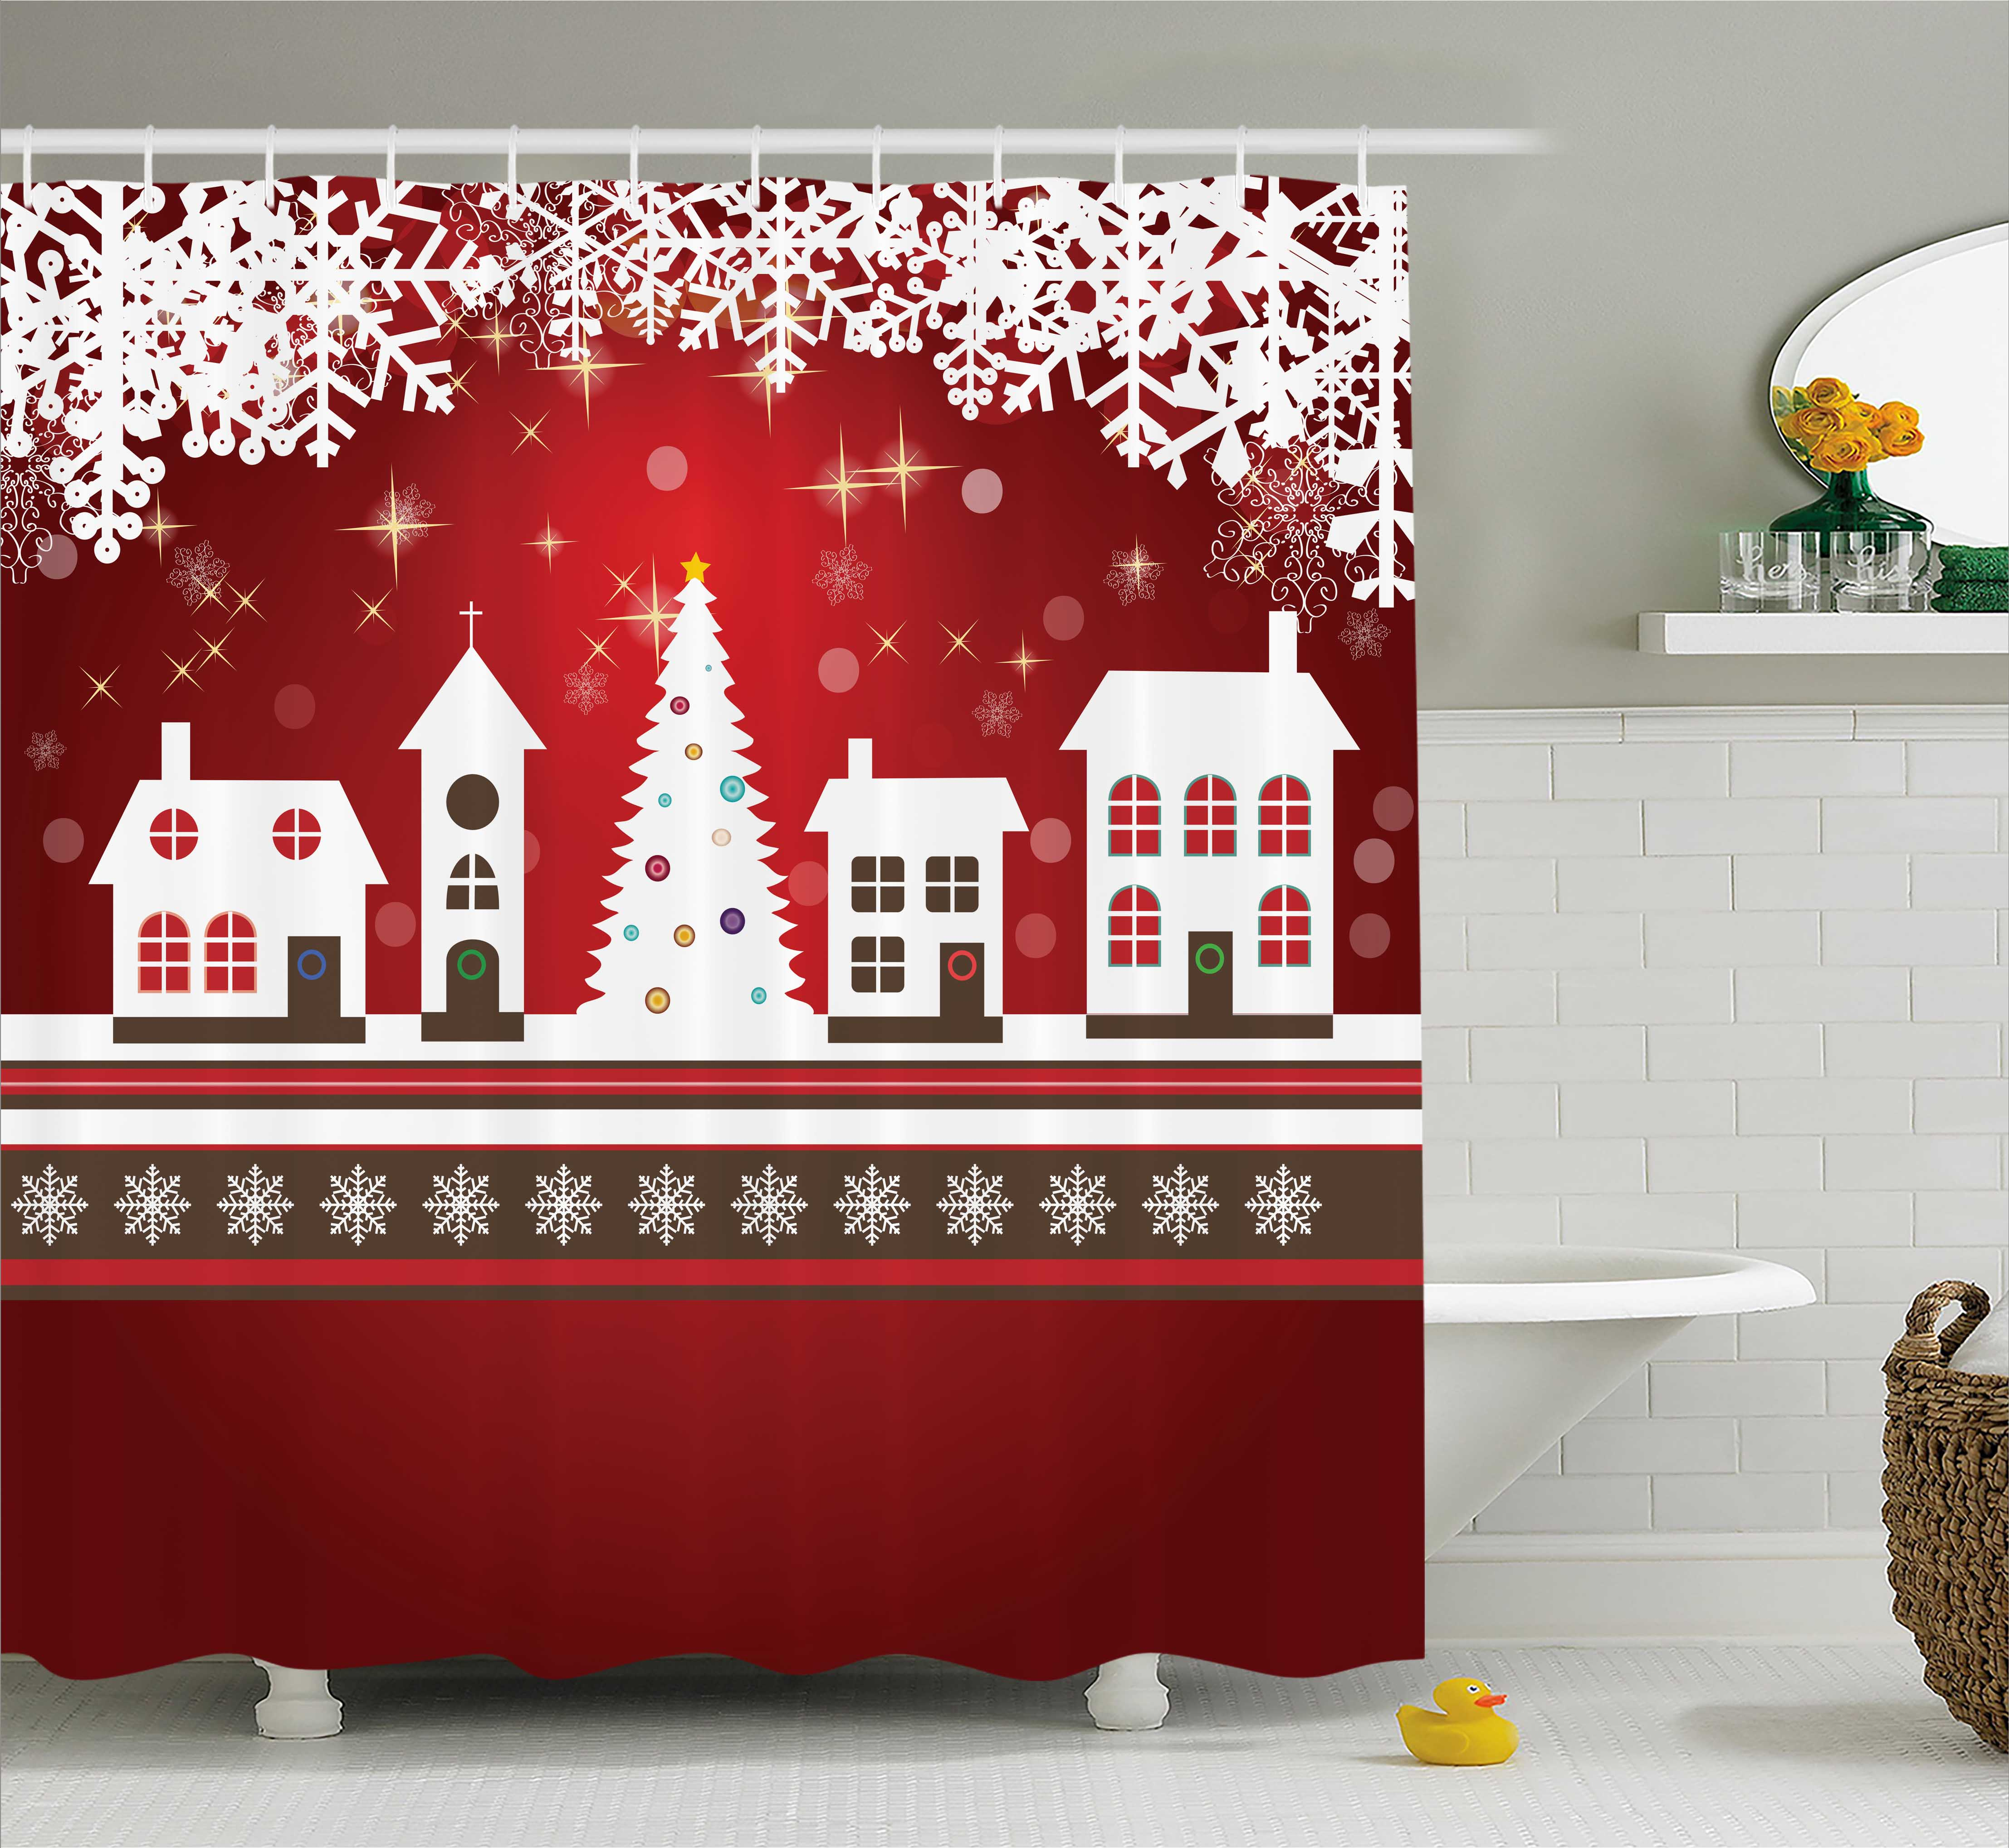 Christmas Decorations Shower Curtain Set, Winter Holidays Themed Gingerbread Houses Xmas Tree Lights and Snowflakes... by Kozmos